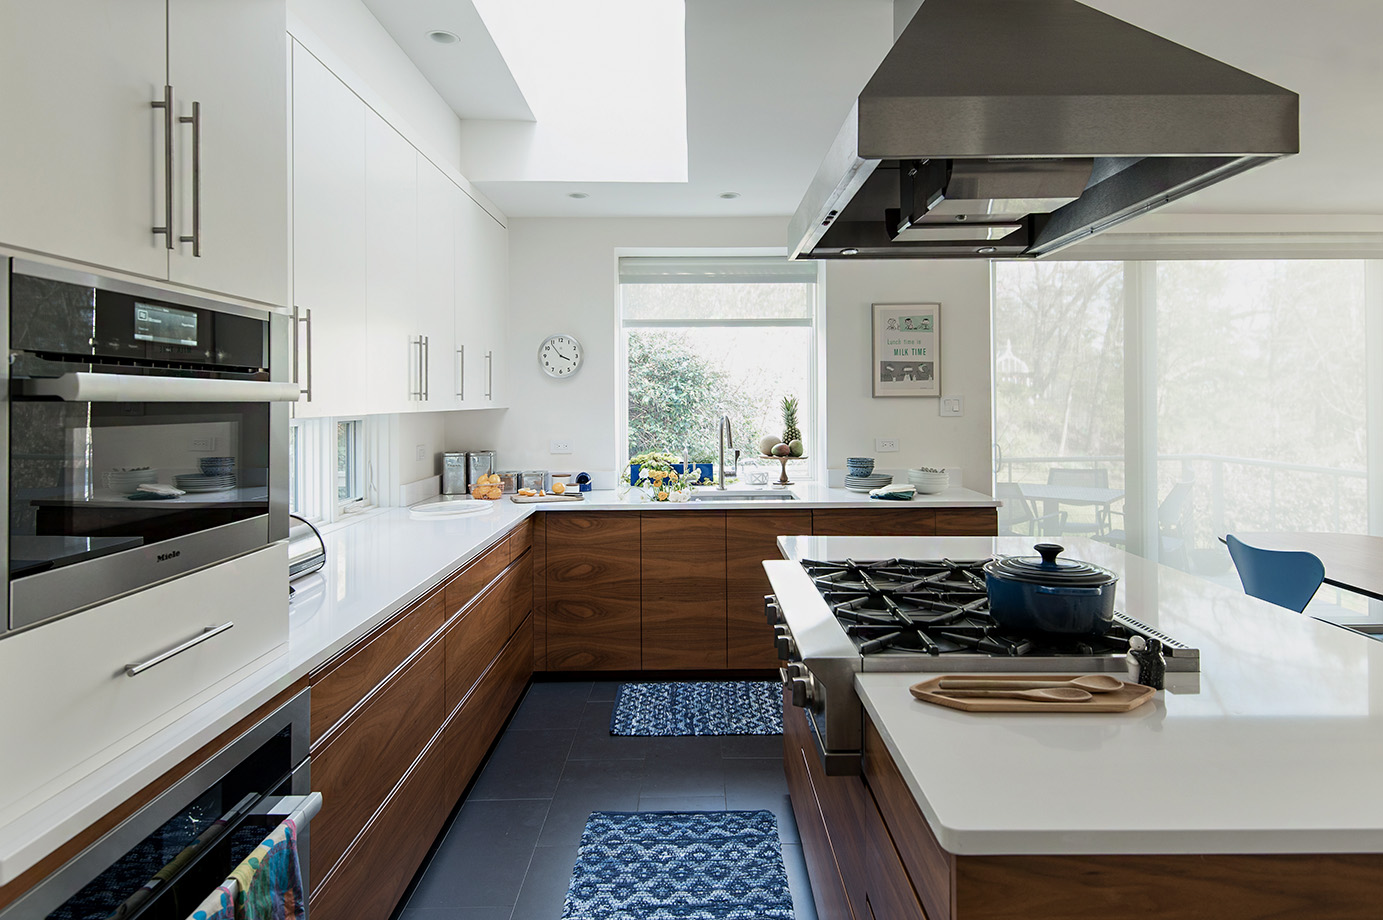 Wood, white and stainless steel styled kitchen